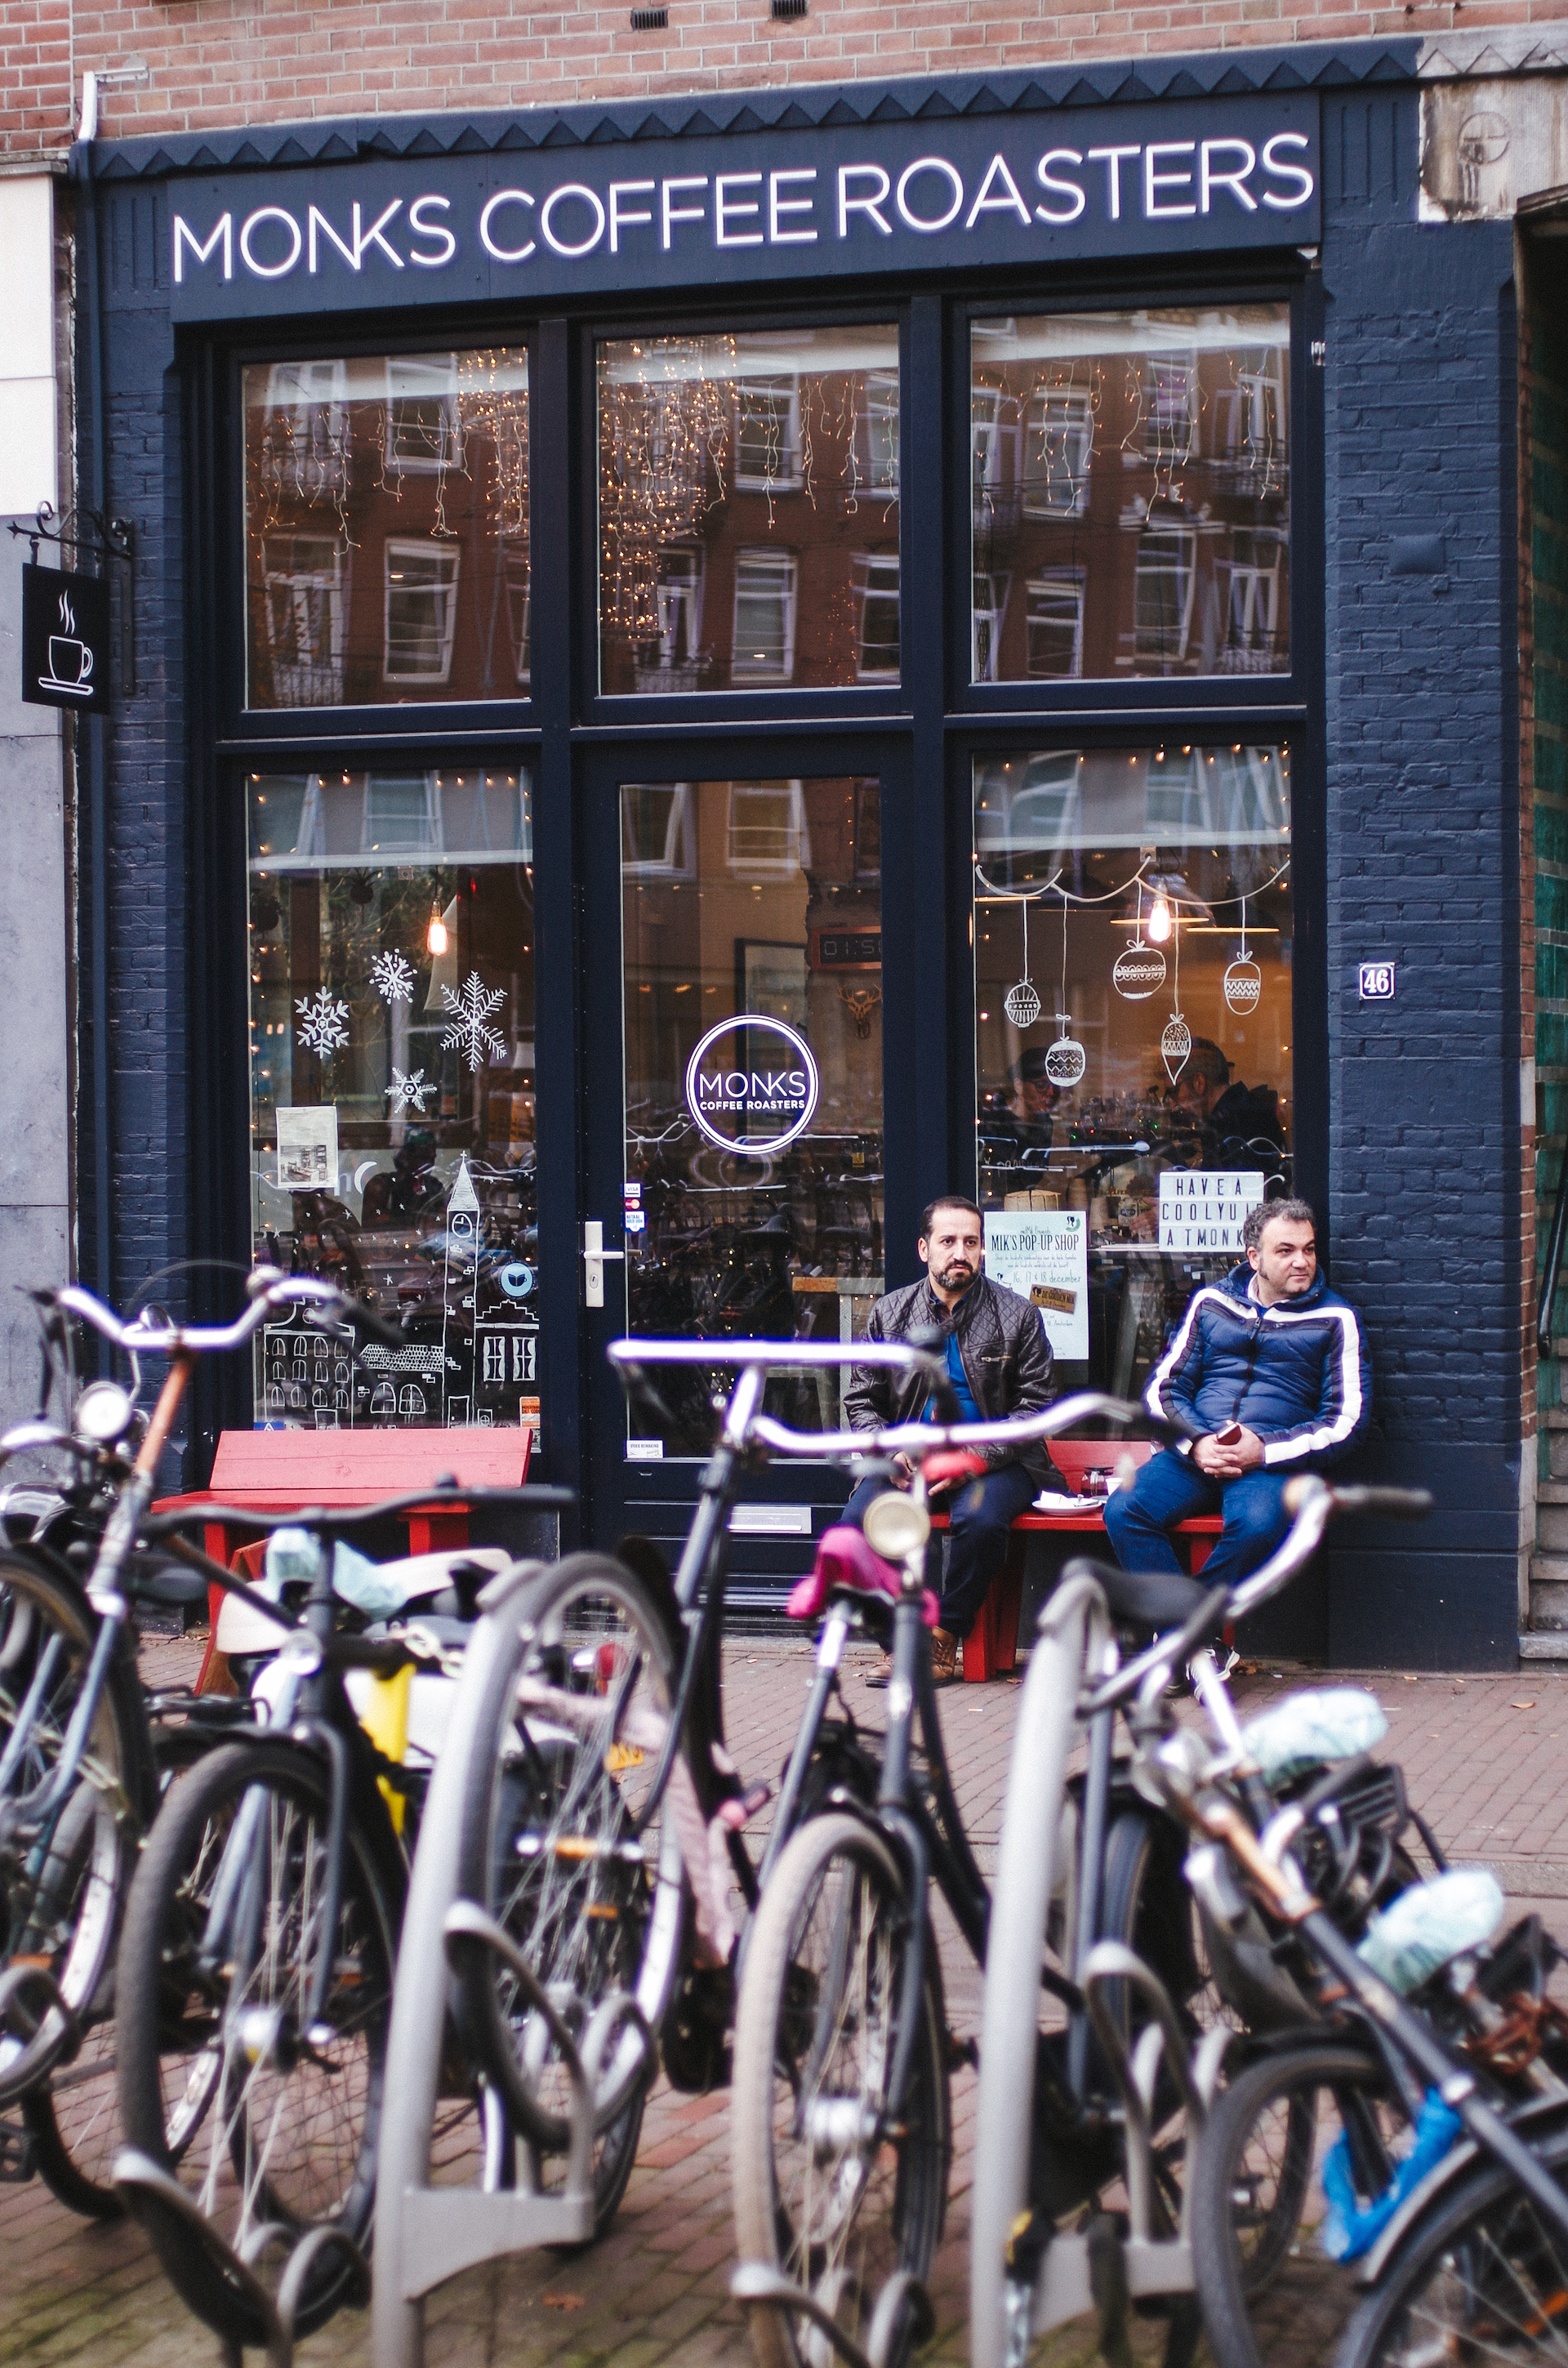 Amsterdam, Monks Coffee Roasters